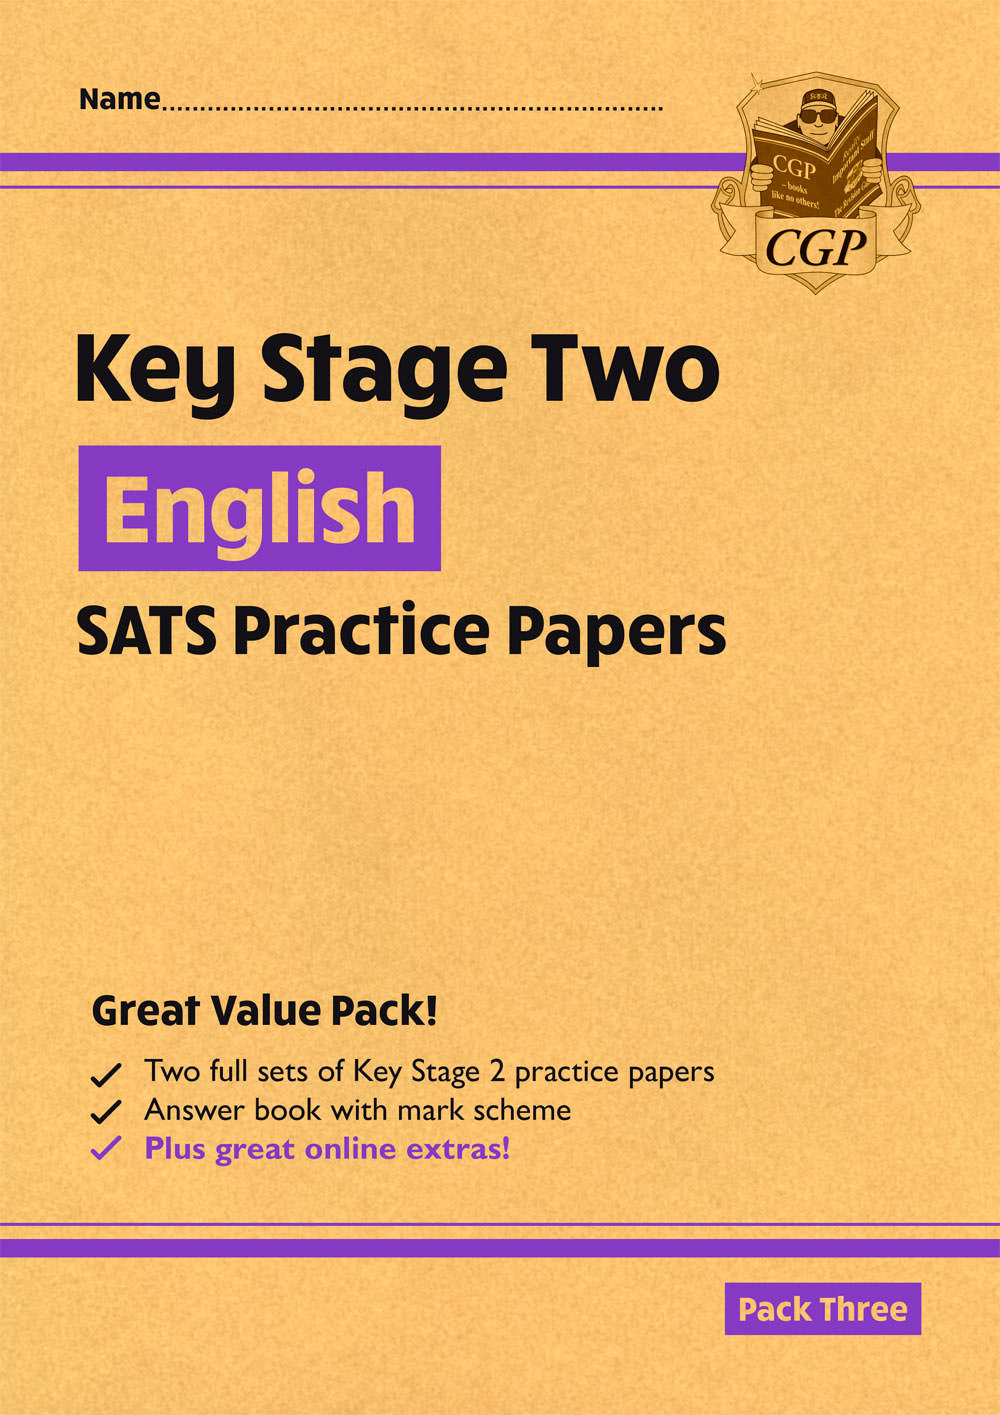 EHPP27 - New KS2 English SATS Practice Papers: Pack 3 (with free Online Extras)